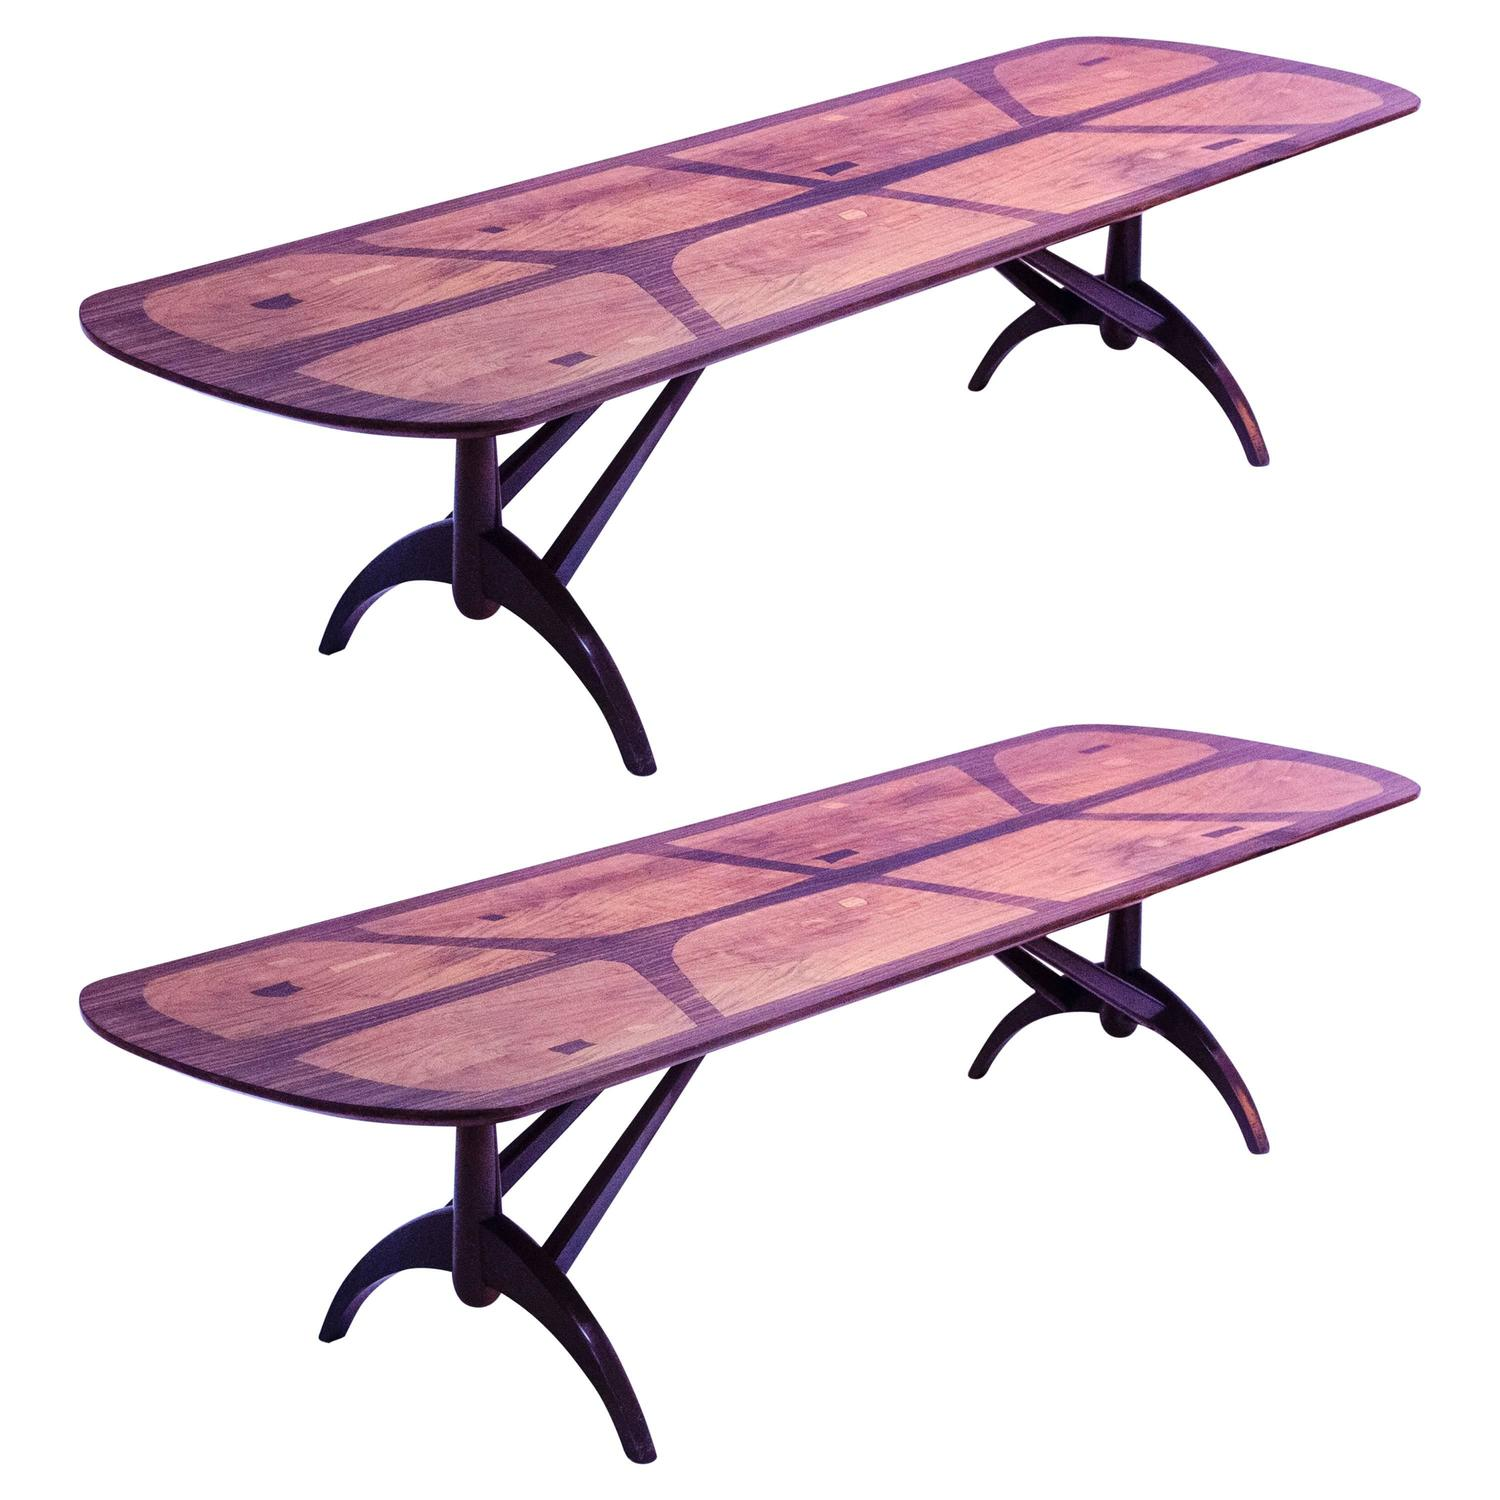 Pair of Heals Long Tom Rosewood Coffee Tables For Sale at 1stdibs